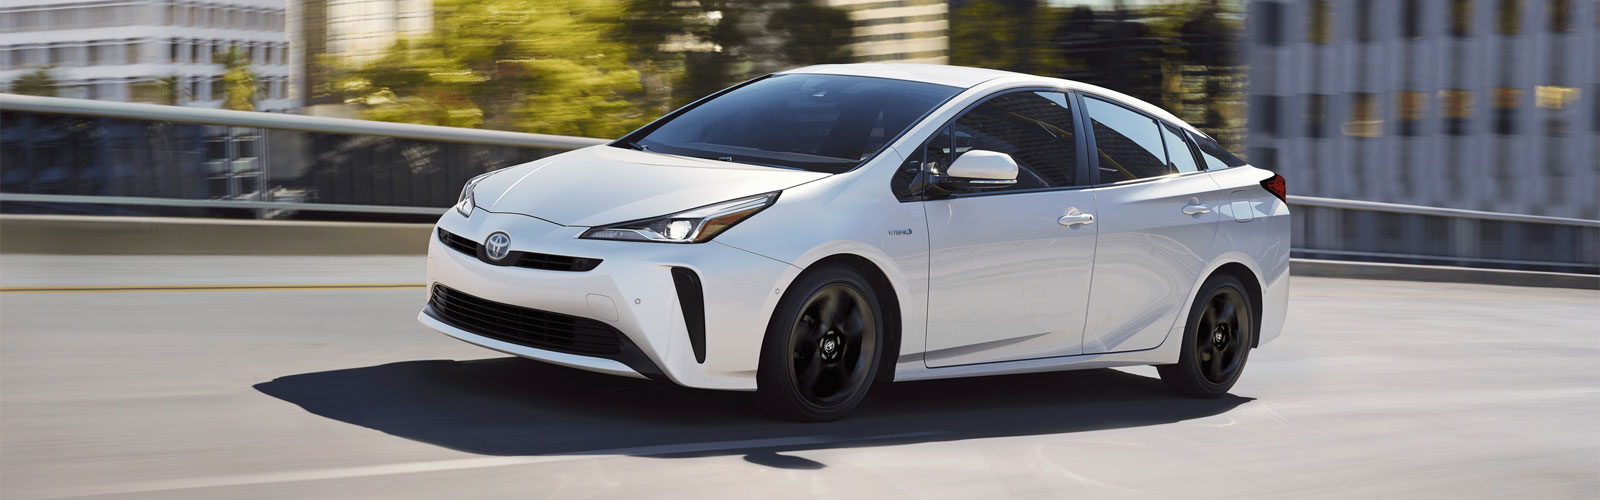 2020 Toyota Prius Hybrid Sedans For Sale In Grenada, Mississippi